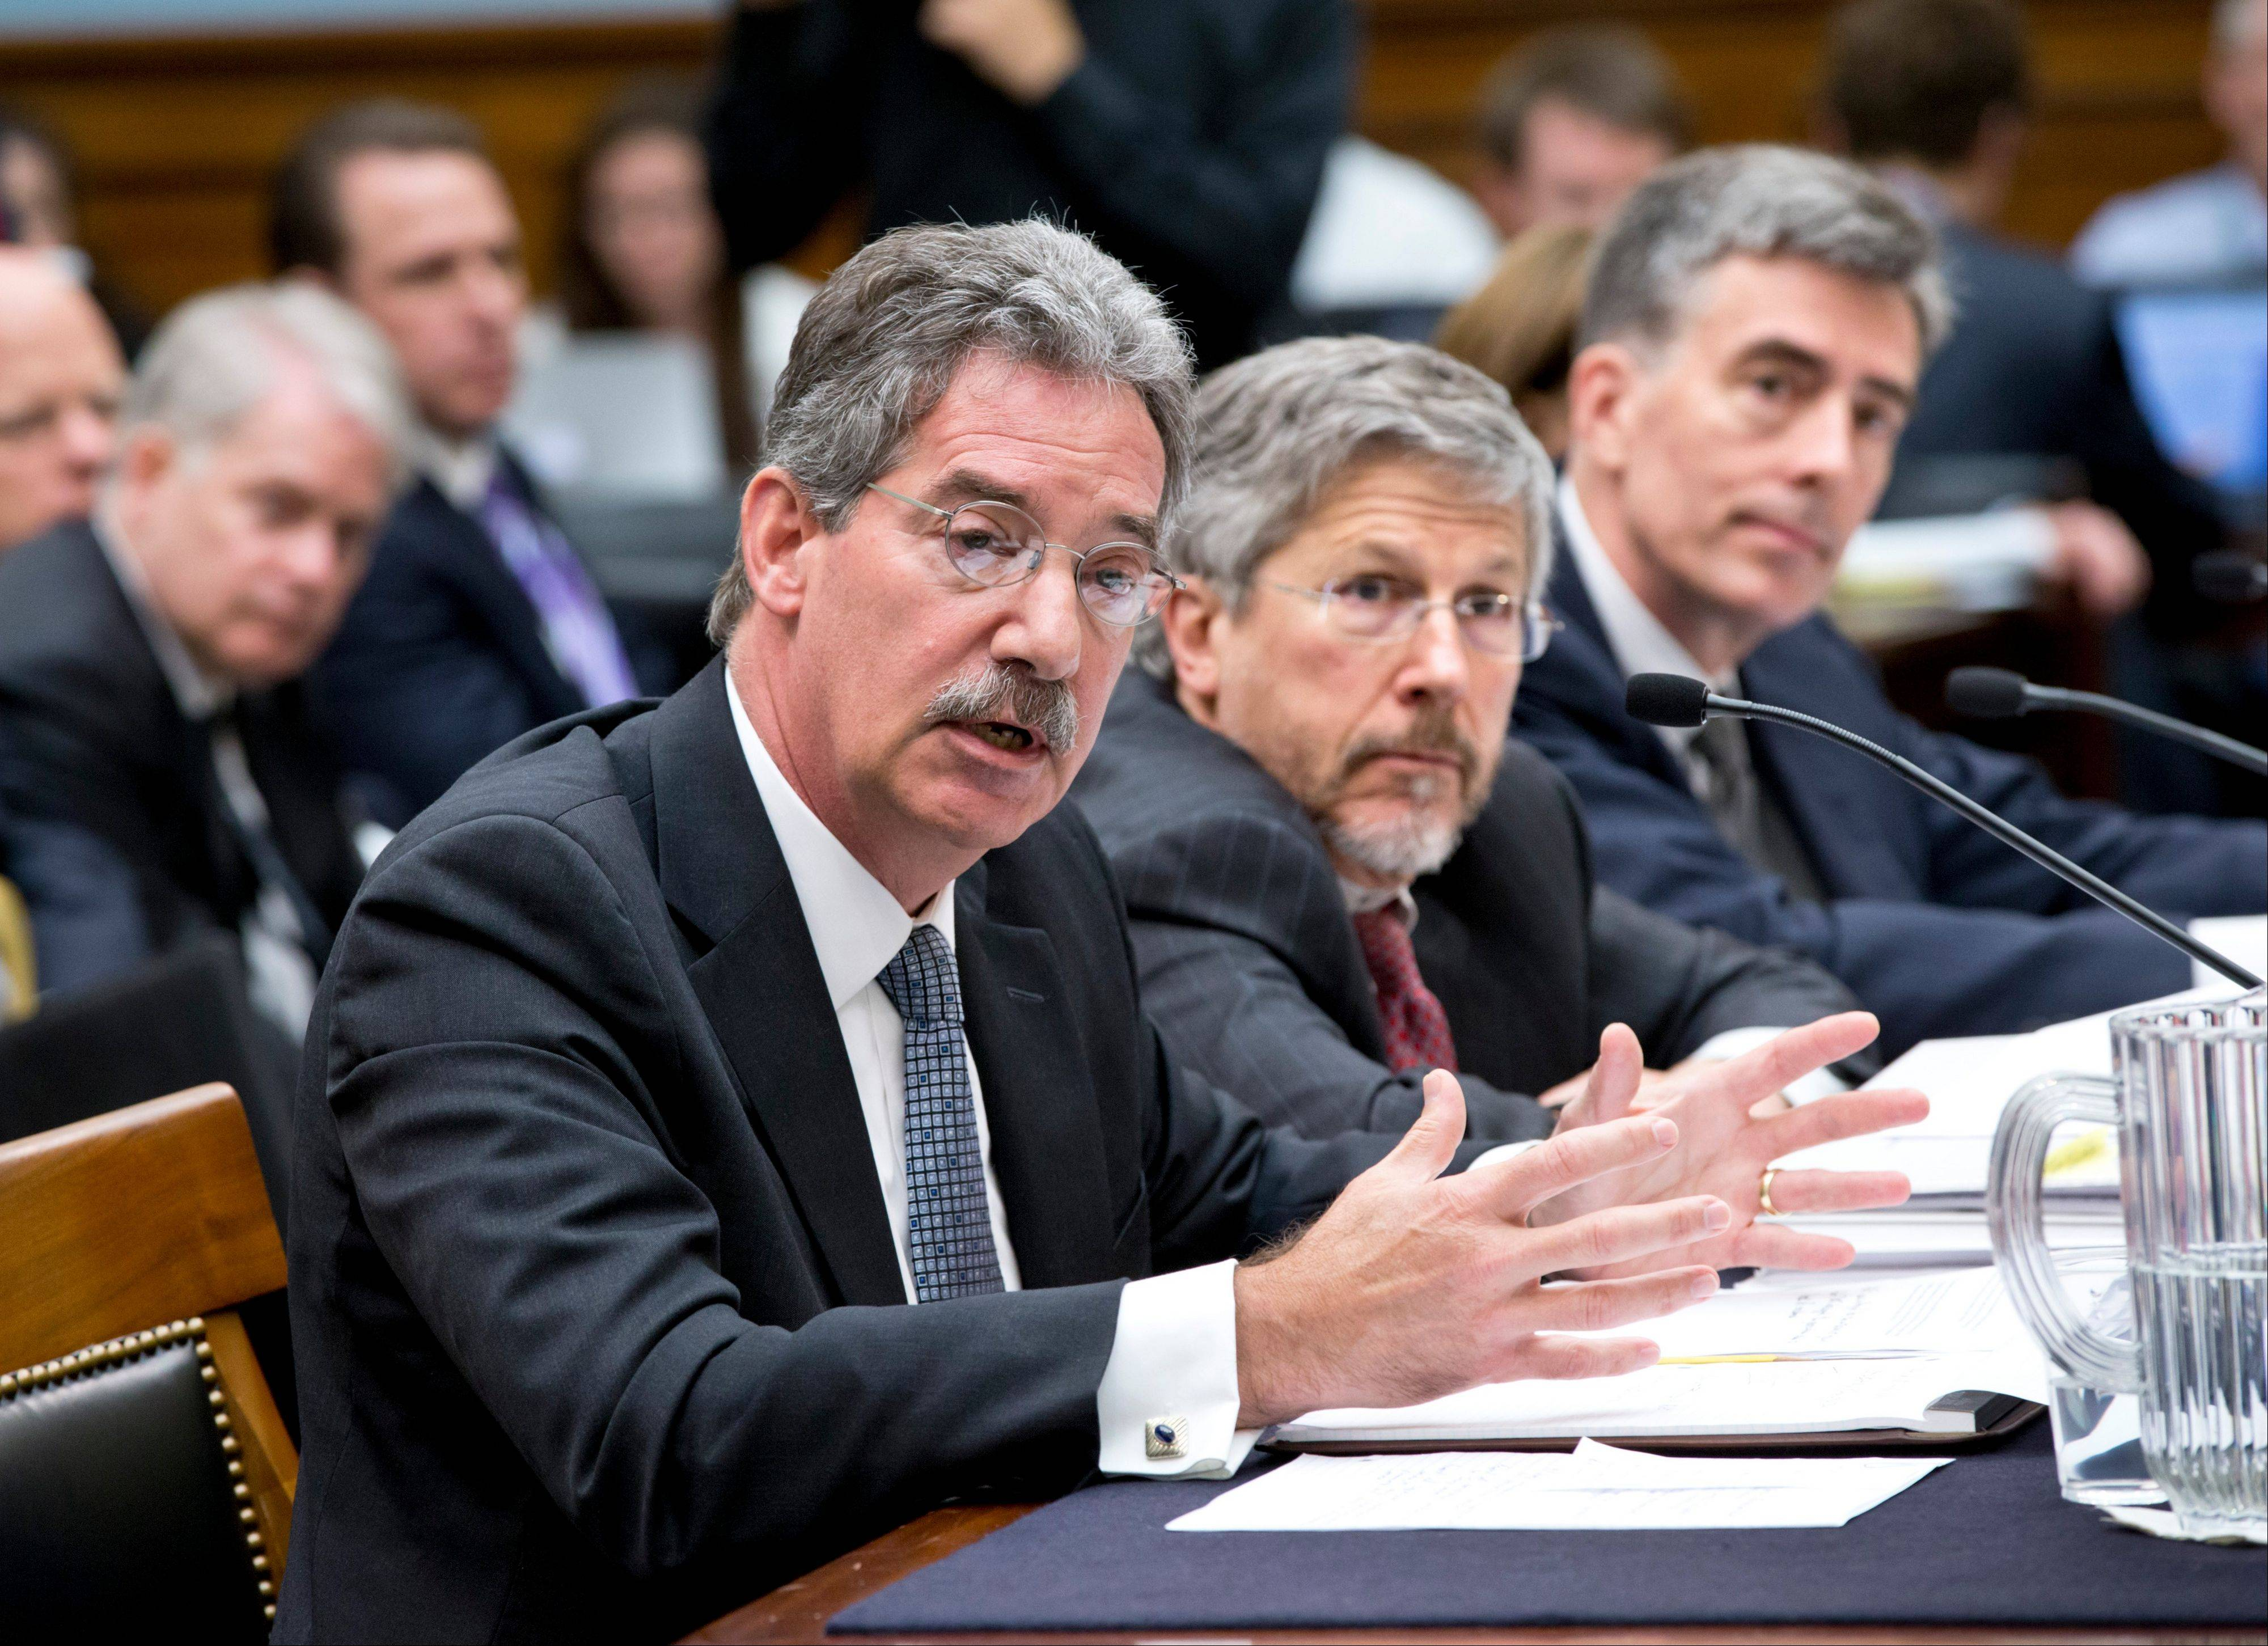 From left to right, Deputy Attorney General James Cole; Robert S. Litt, general counsel in the Office of Director of National Intelligence; and National Security Agency Deputy Director John C. Inglis testify at a House Judiciary hearing on domestic spying on Capitol Hill Wednesday.